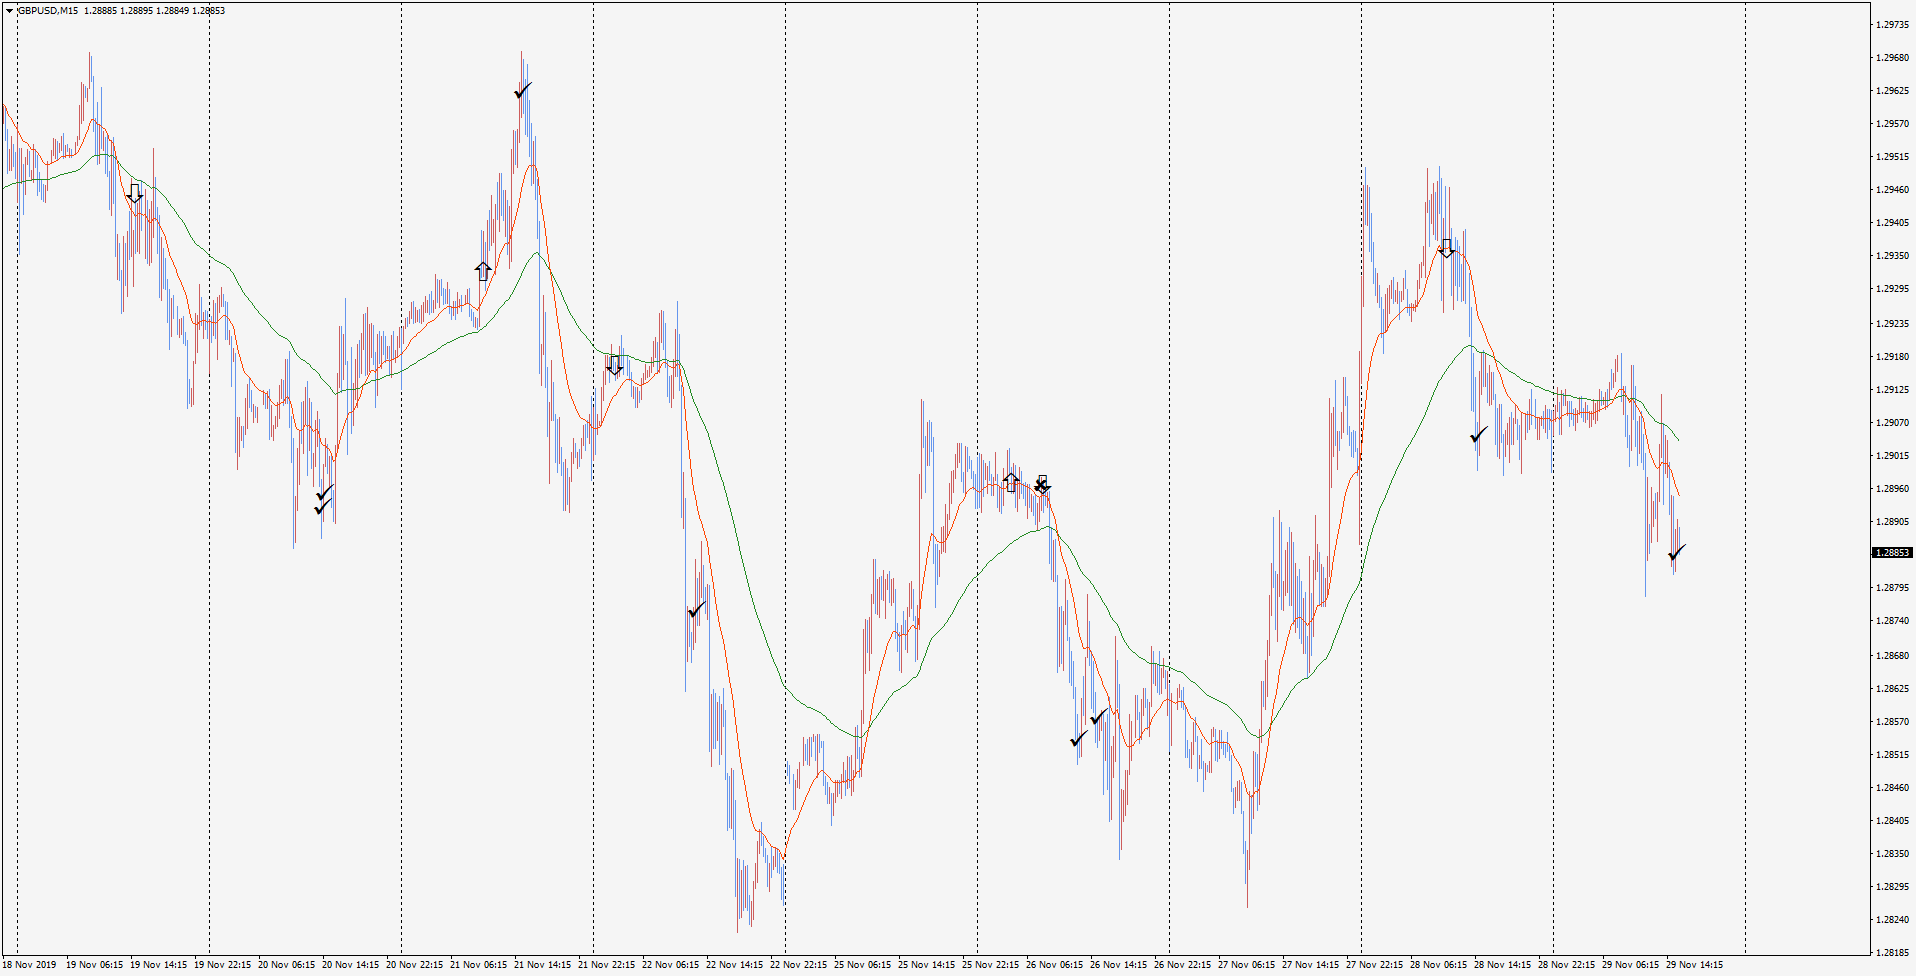 19-11-29-gbpusd-m15-tradexfin-limited.png